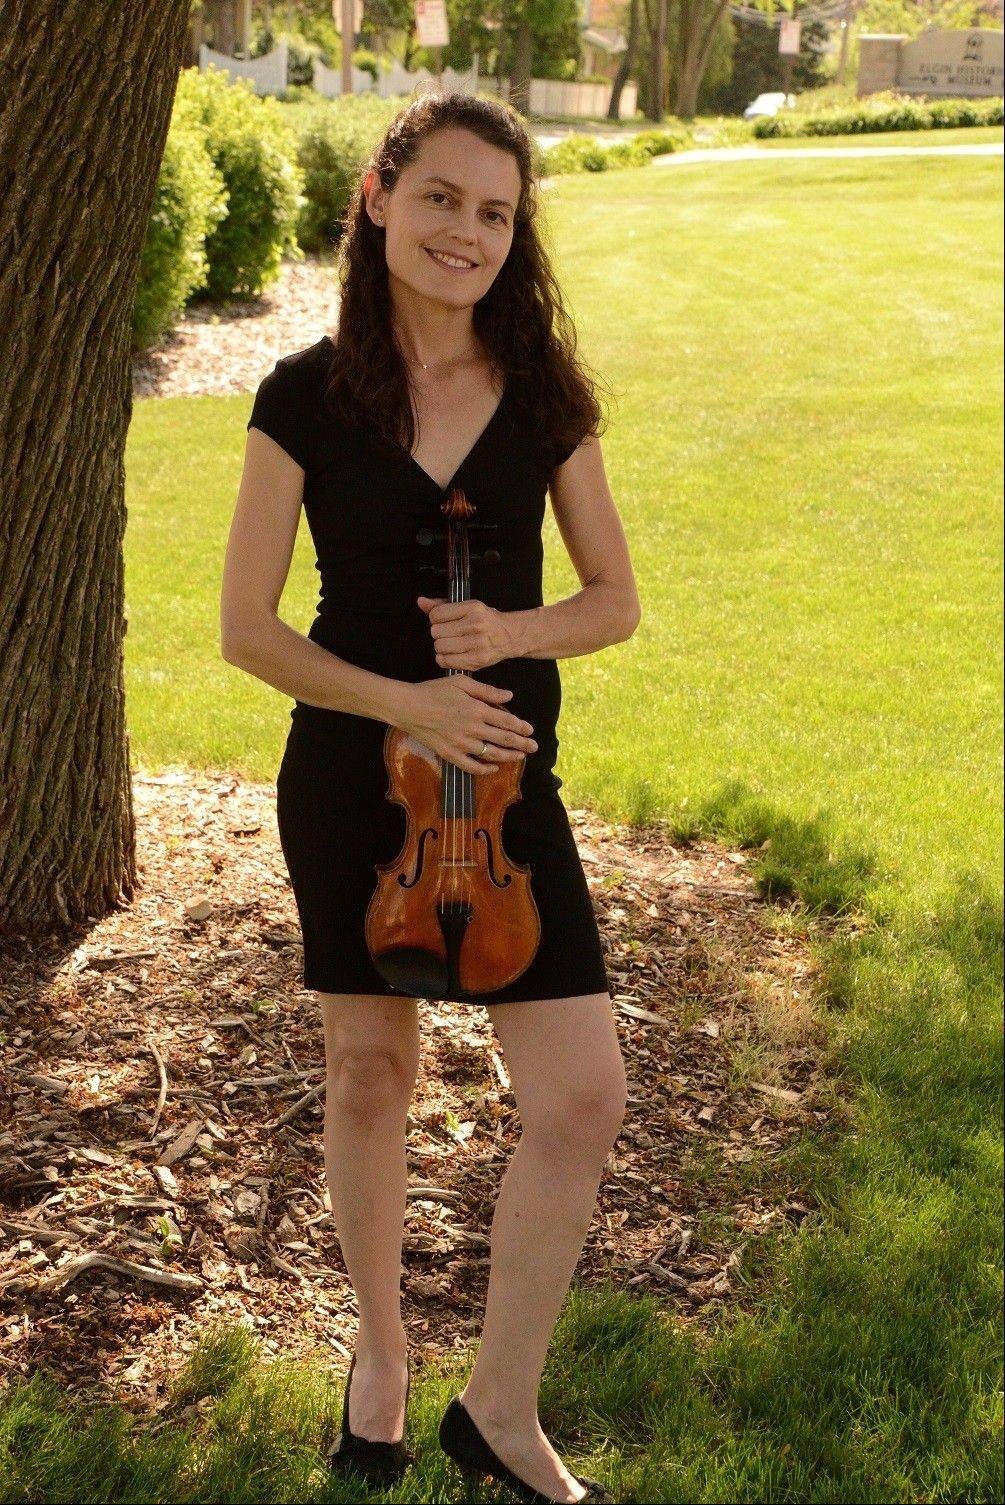 Elgin Symphony Orchestra concertmaster Isabella Lippi is set to perform a Sibelius Violin Concerto at the Hemmens Cultural Center.